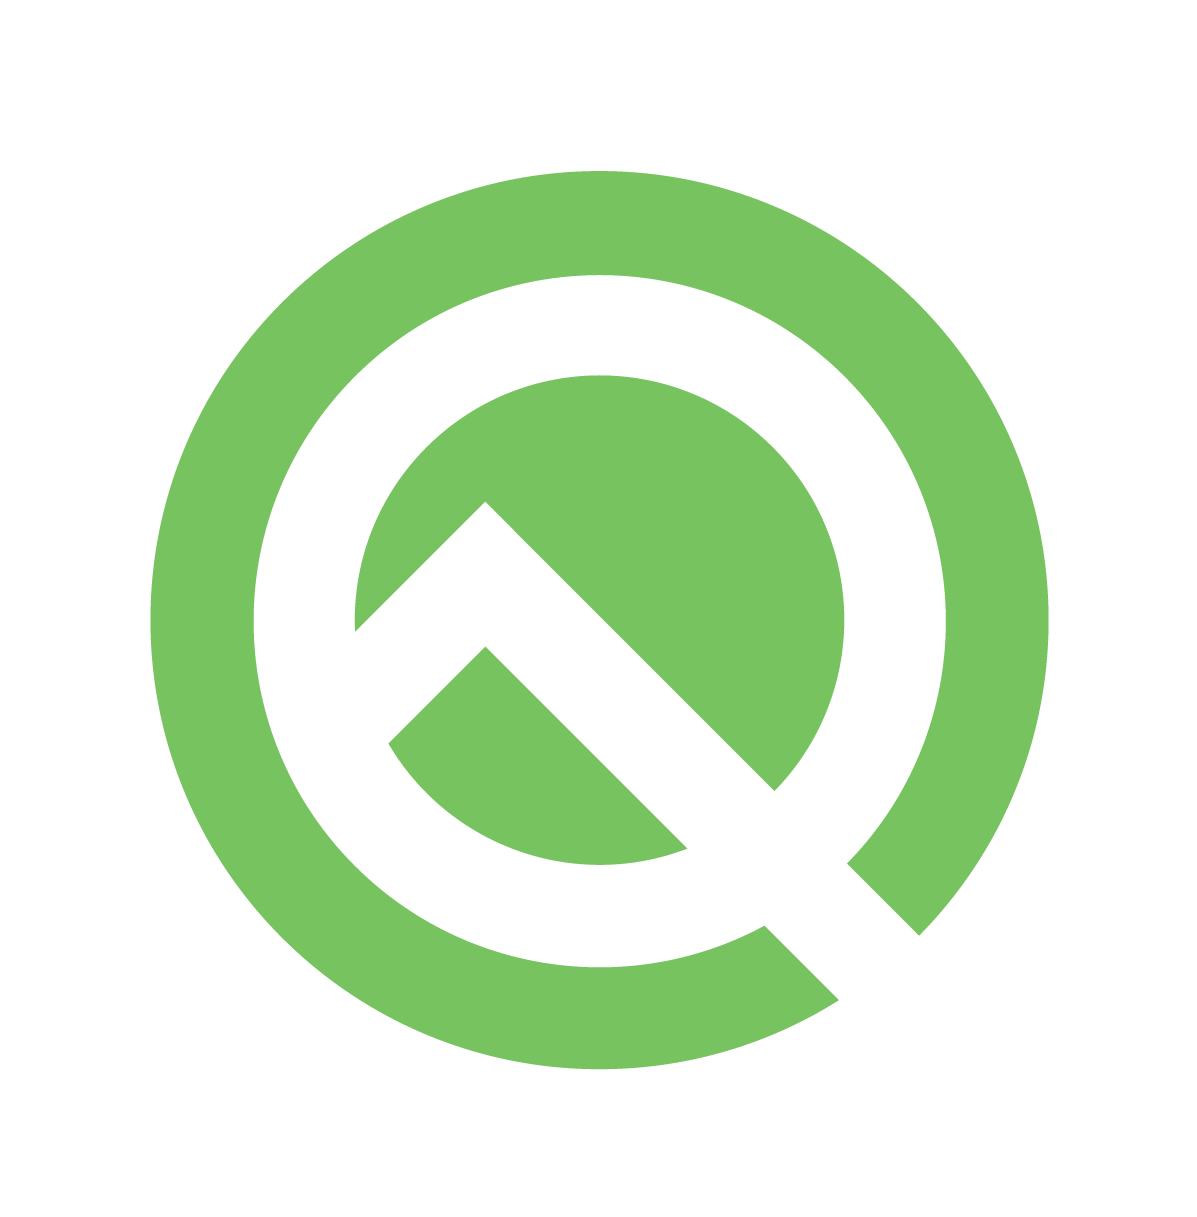 Vulkan 1 1 is a requirement in Android Q